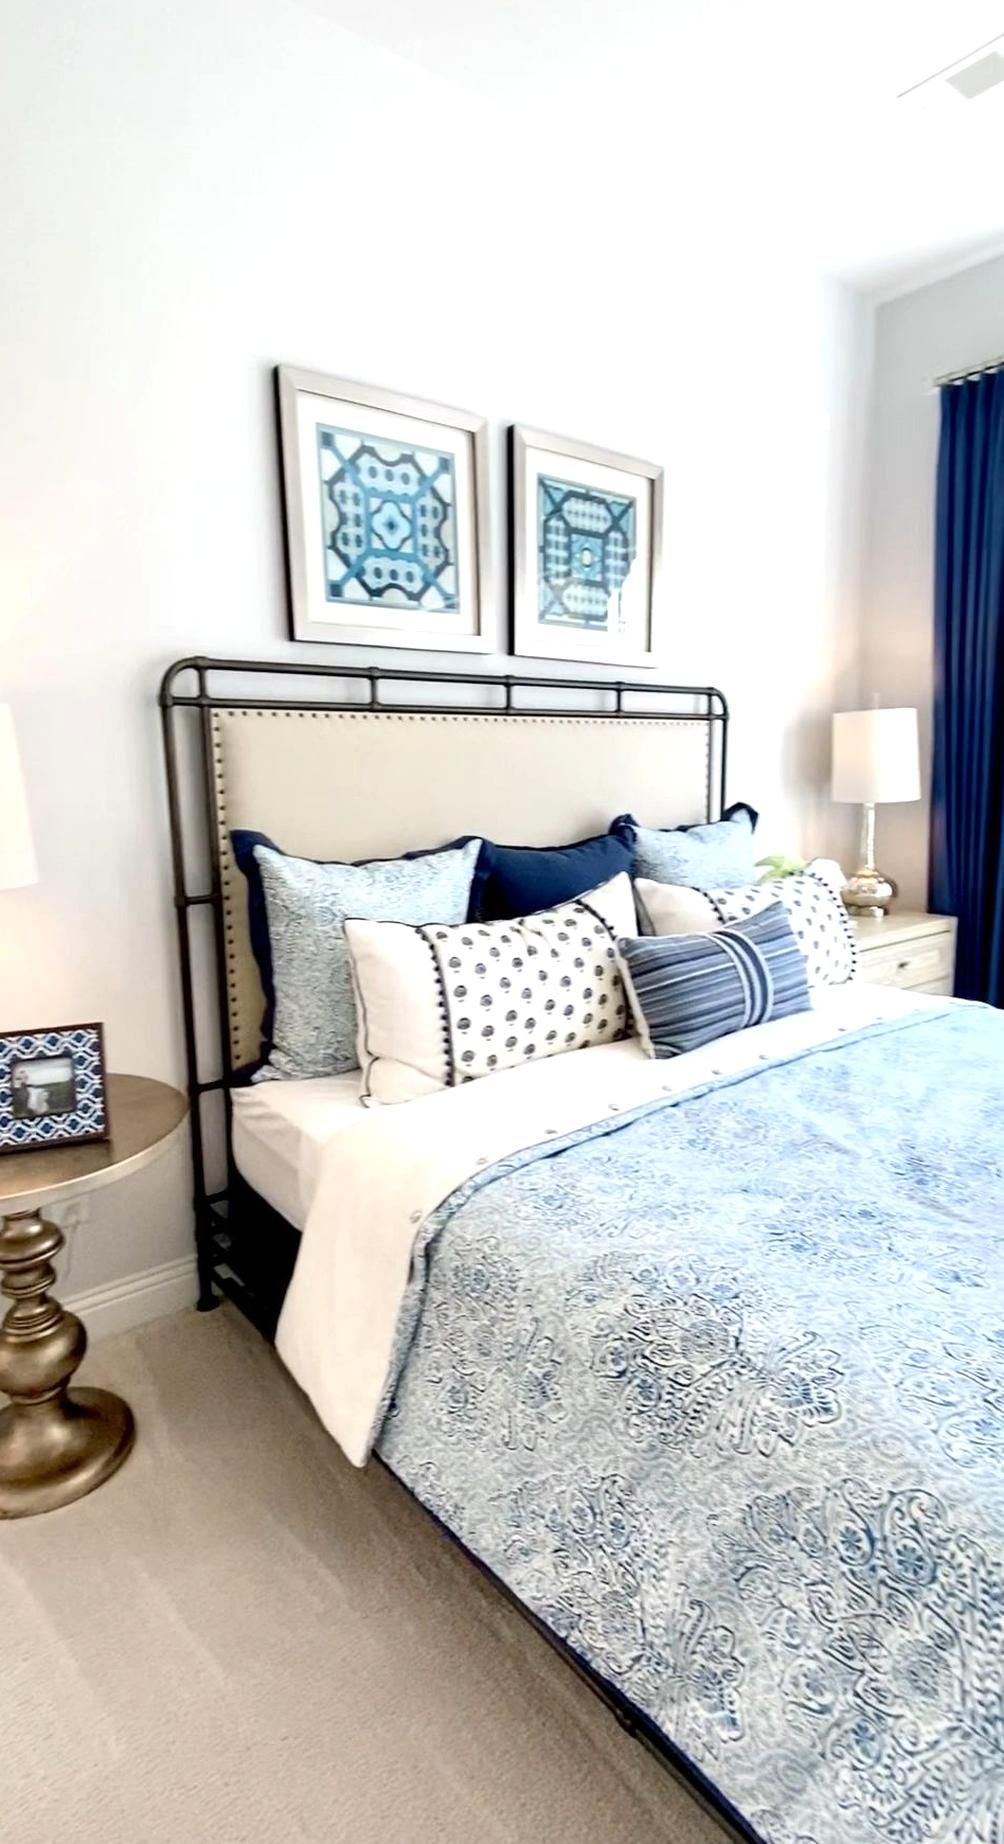 Master bedroom design with light and navy blue accents